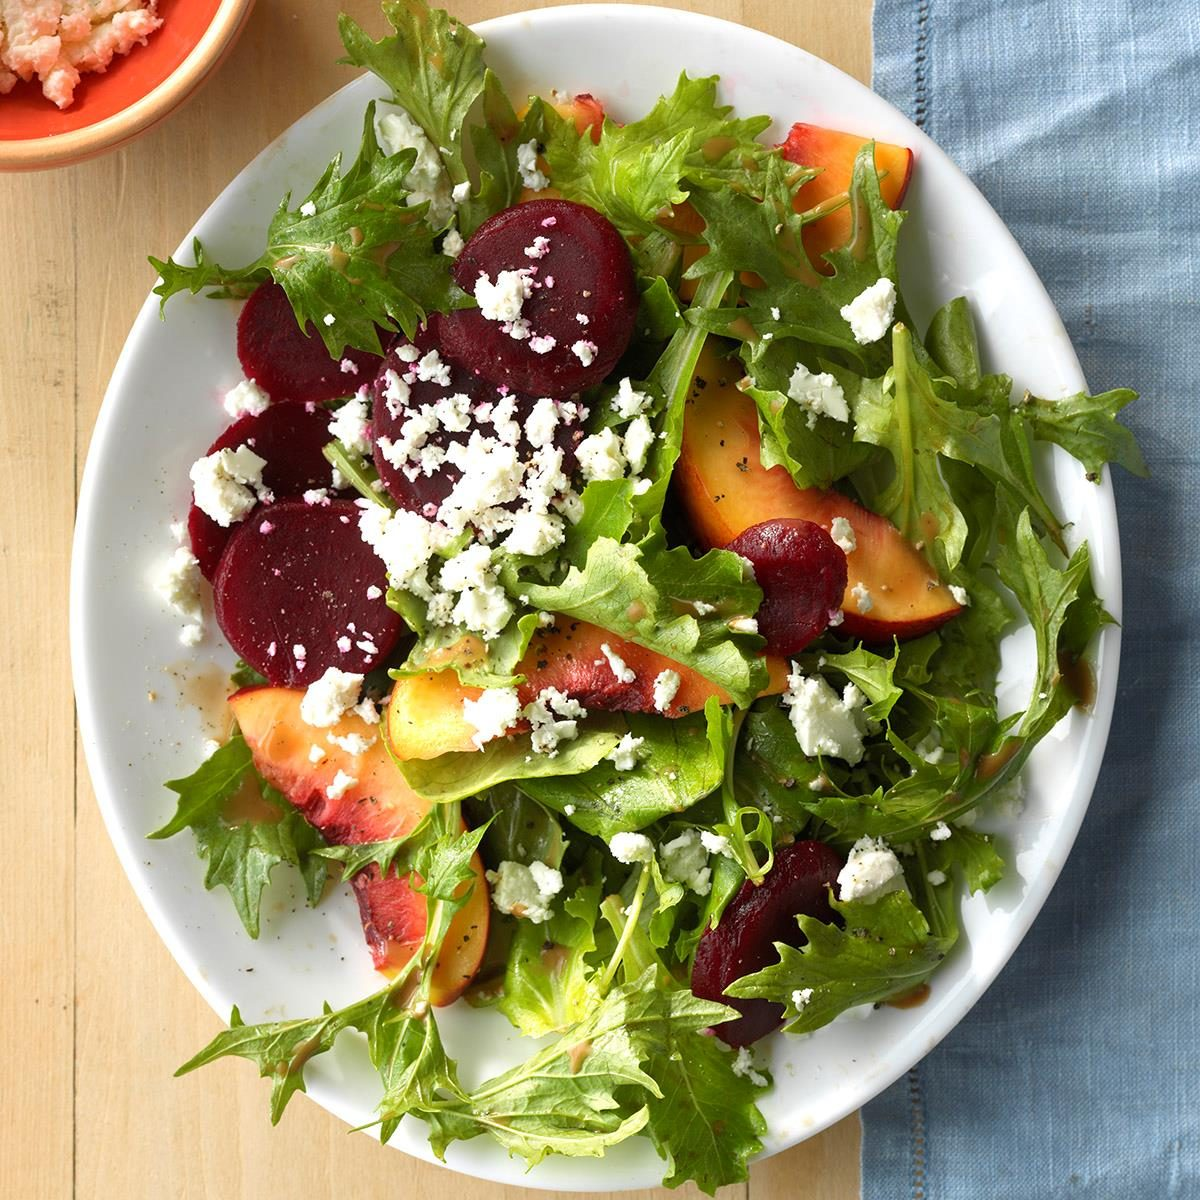 Nectarine and Beet Salad